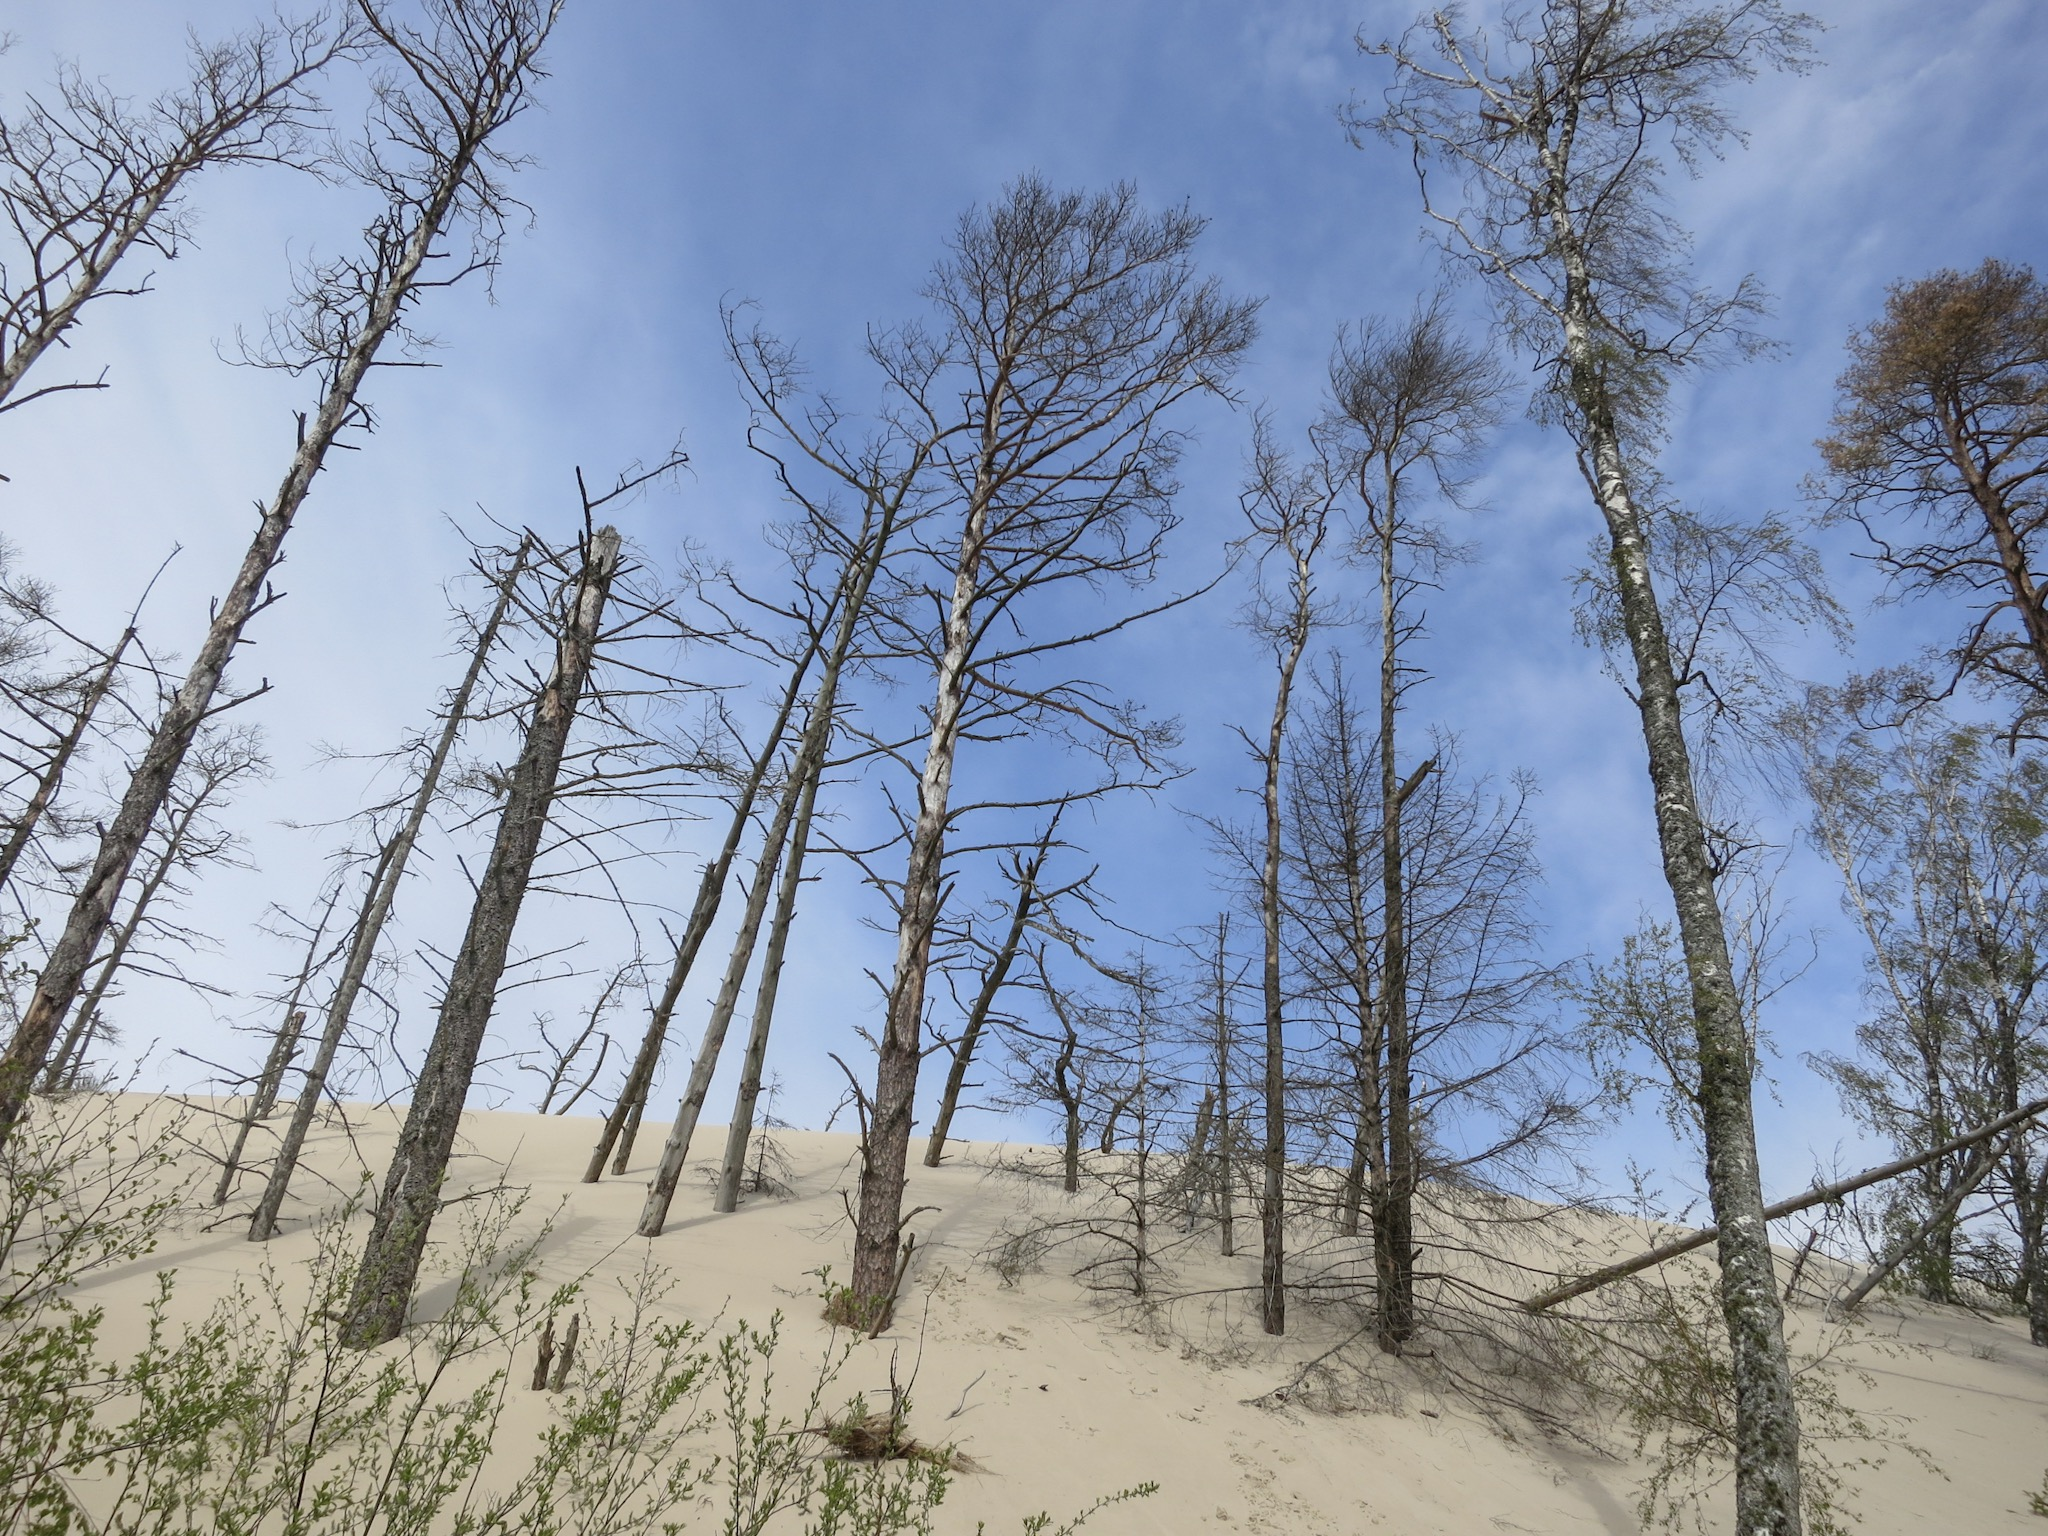 Trees jut out of the side of the Łackca Sand Dune In Słowiński National Park